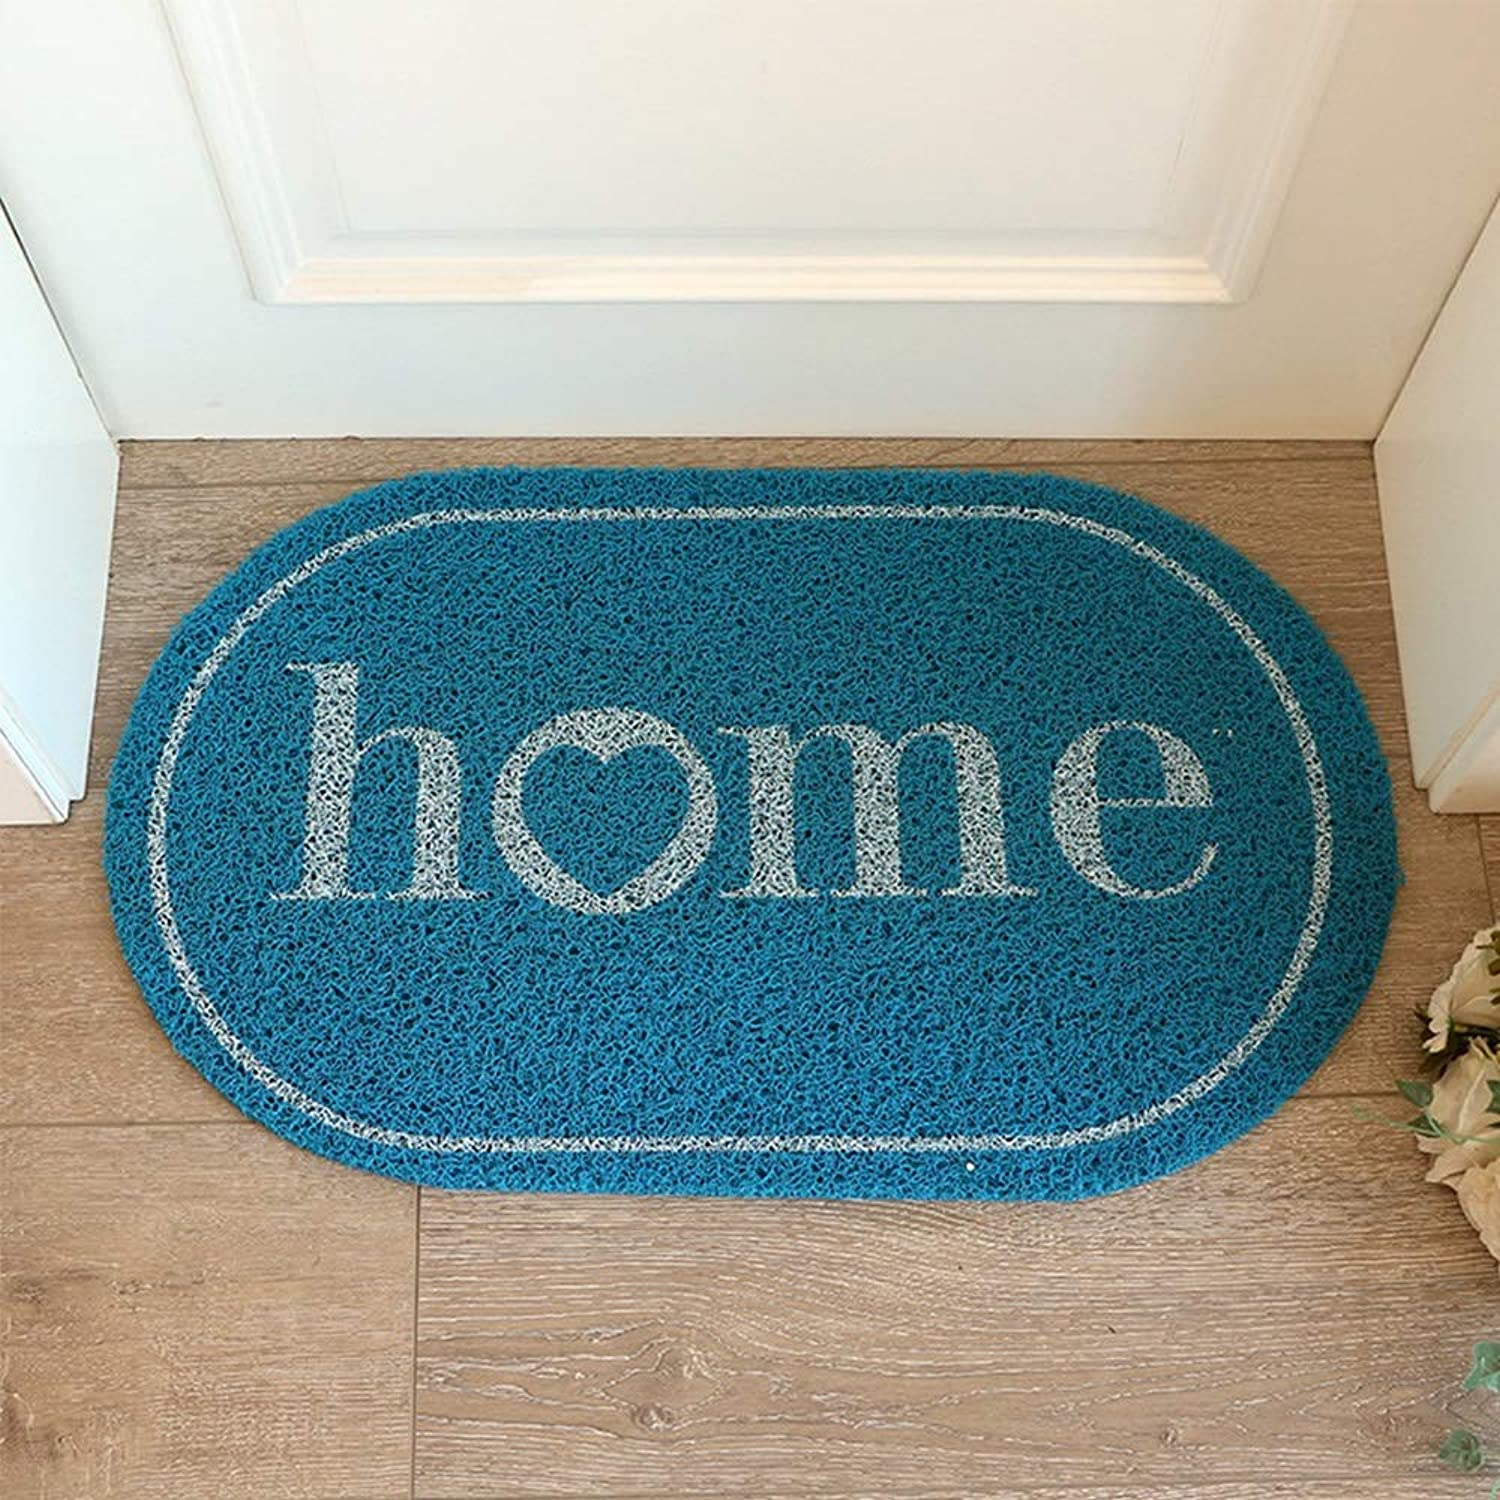 MING REN Floor Mat - Environmentally Friendly PVC, Hollow Design, Block Moisture, Wash-free And Dirt-resistant, Simple Nordic Home Entrance Mat Anti-slip Mat, Suitable For Living Room, Bathroom, Kitch